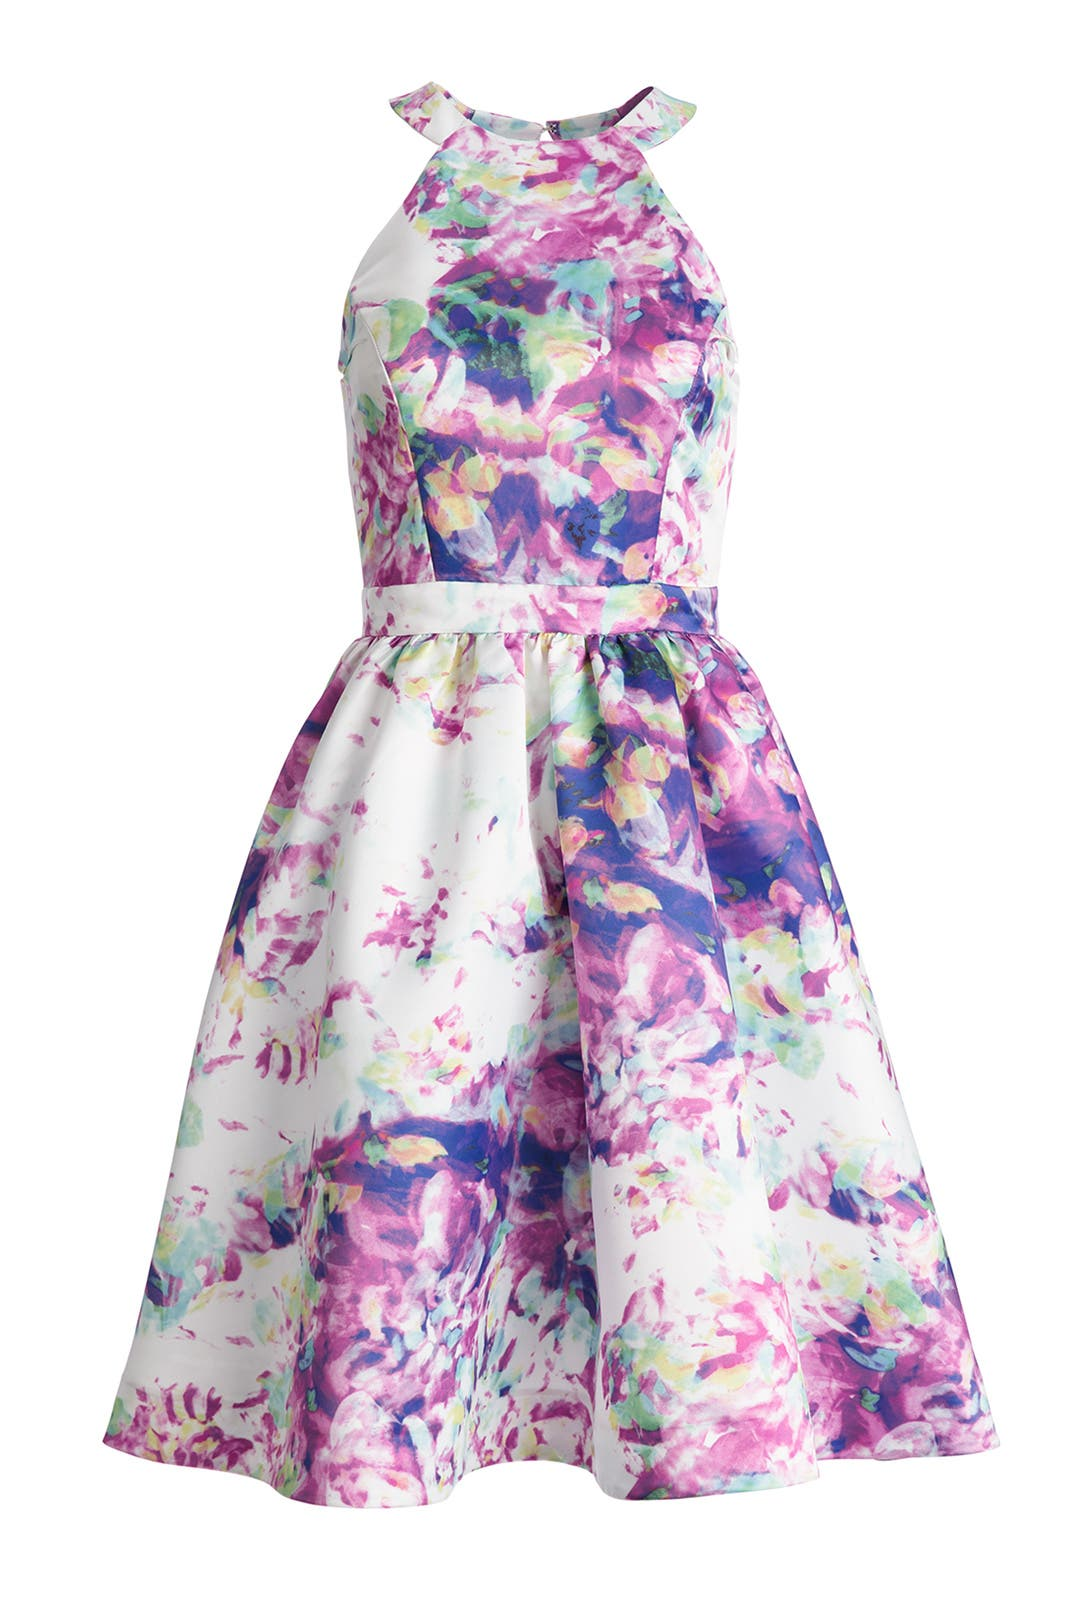 Floral Element Dress by Parker for $70 - $80 | Rent the Runway